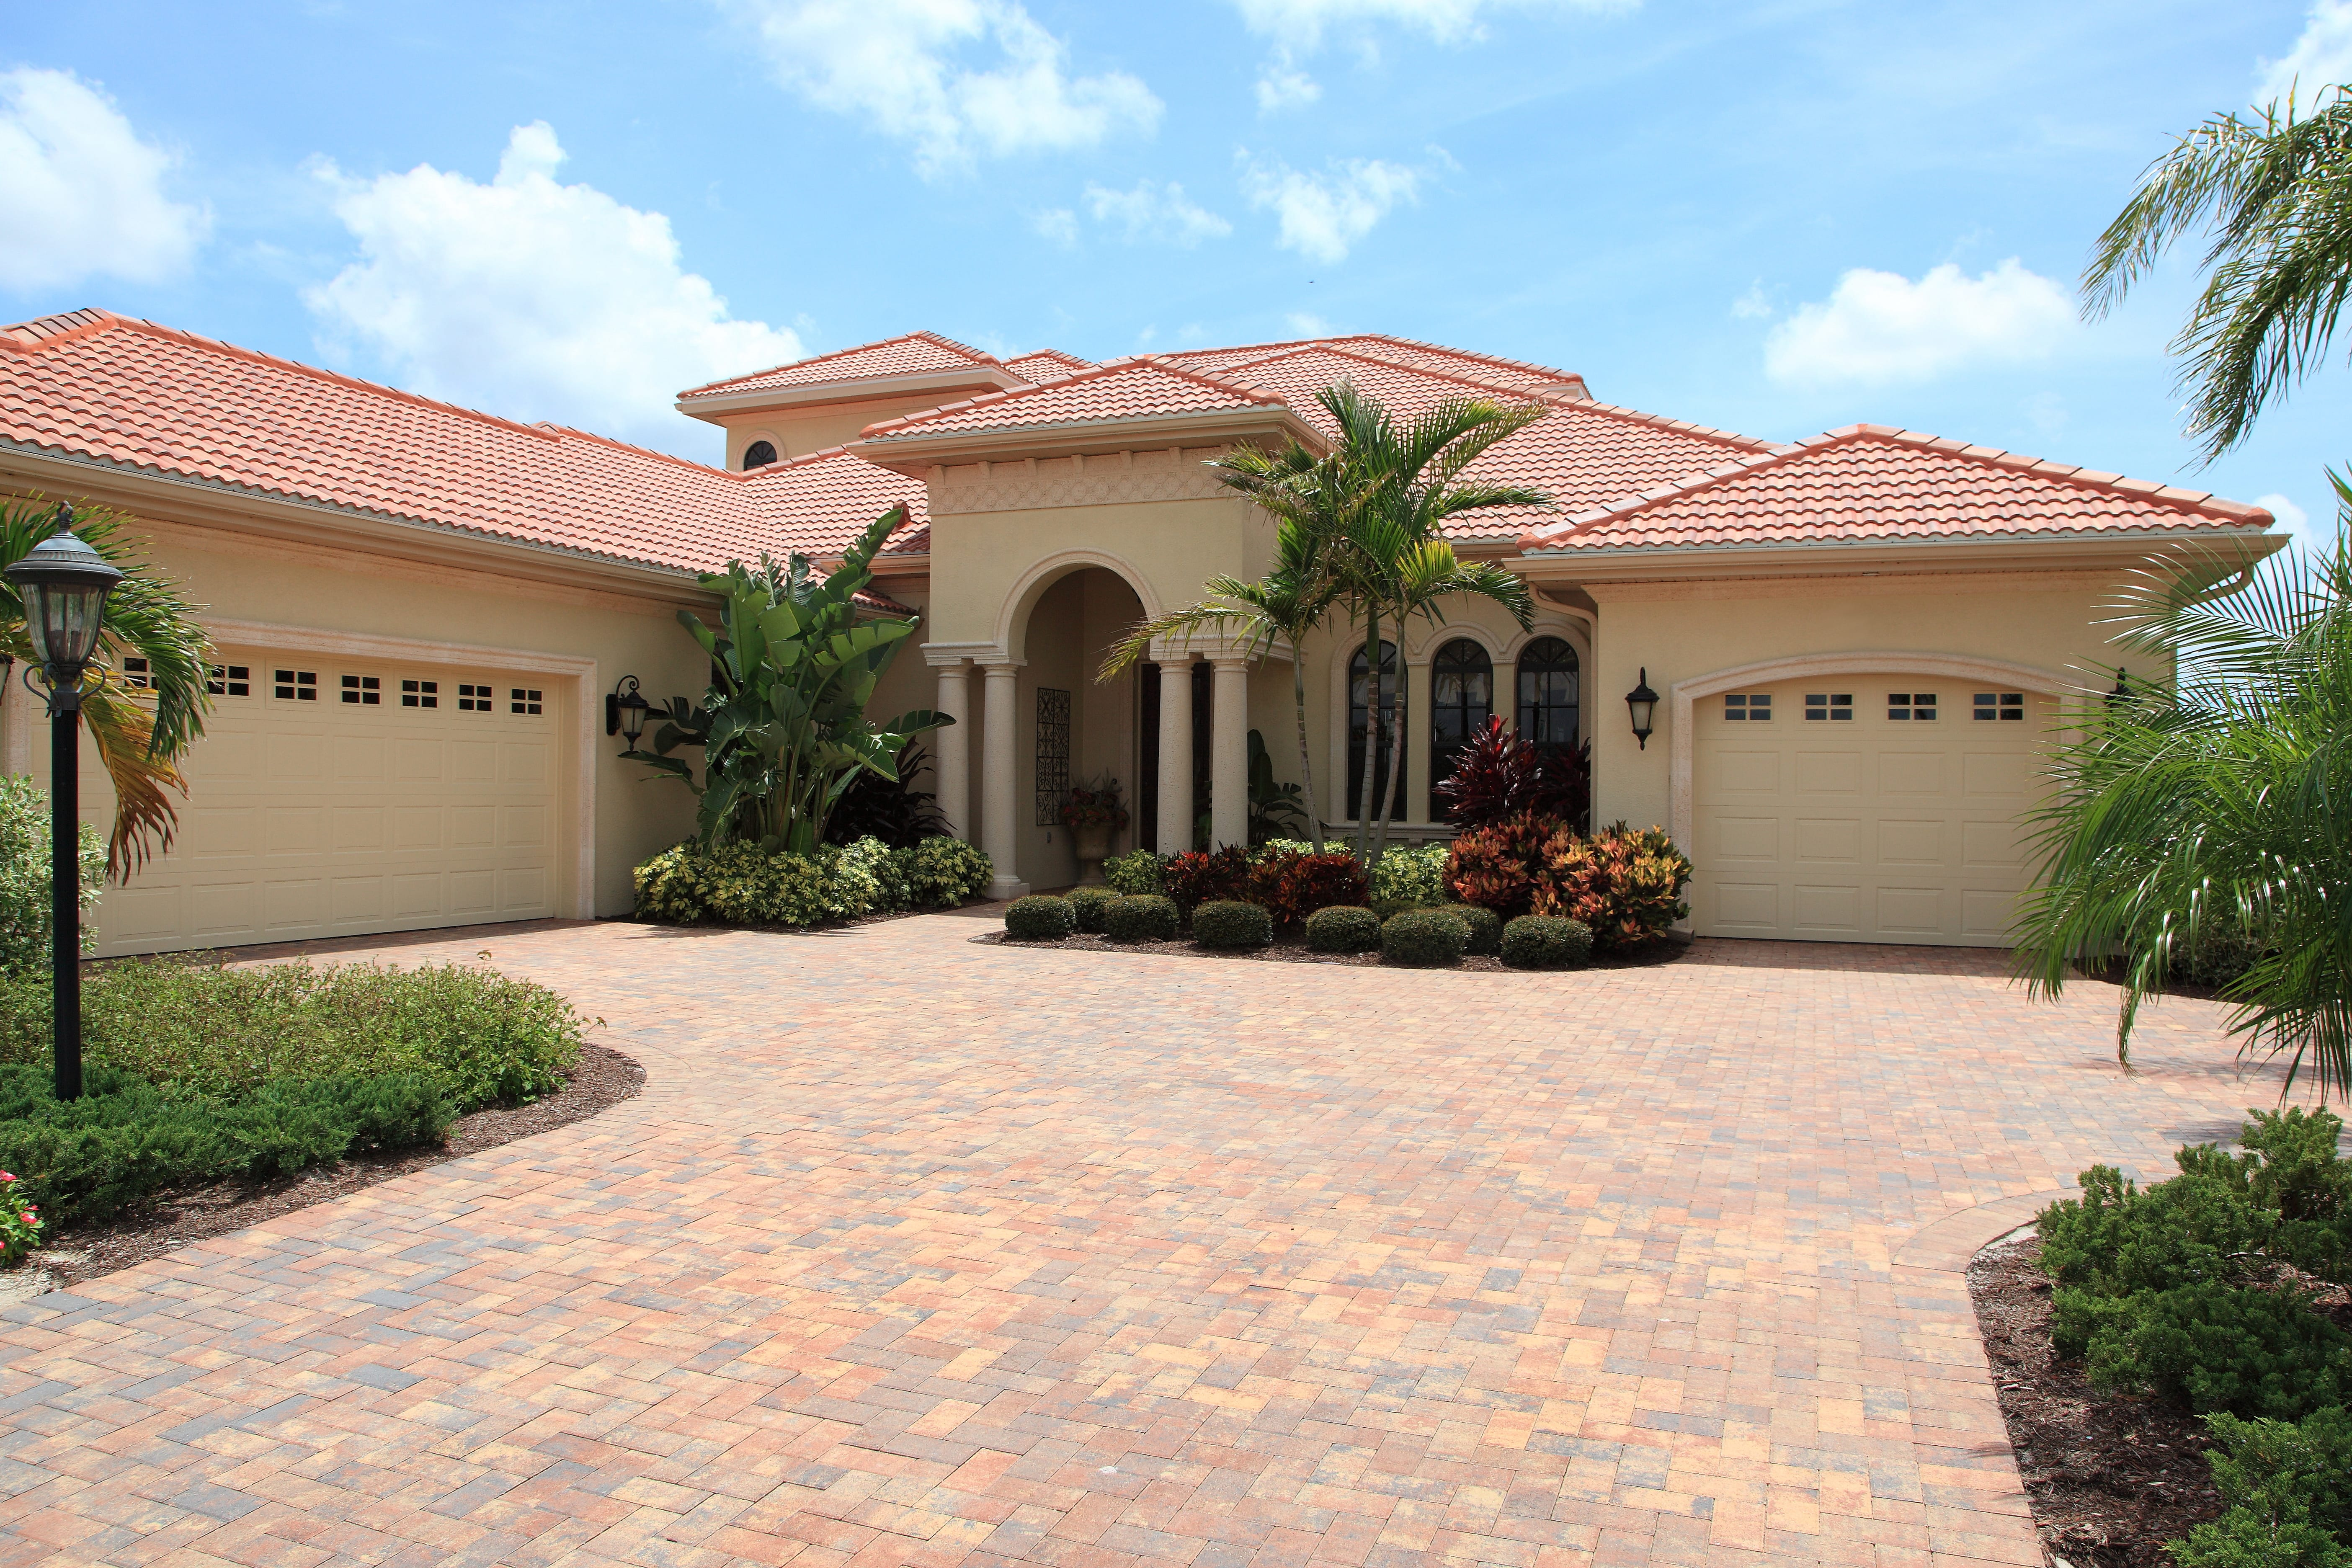 Cliff Clover - eXp Realty, LLC image 0